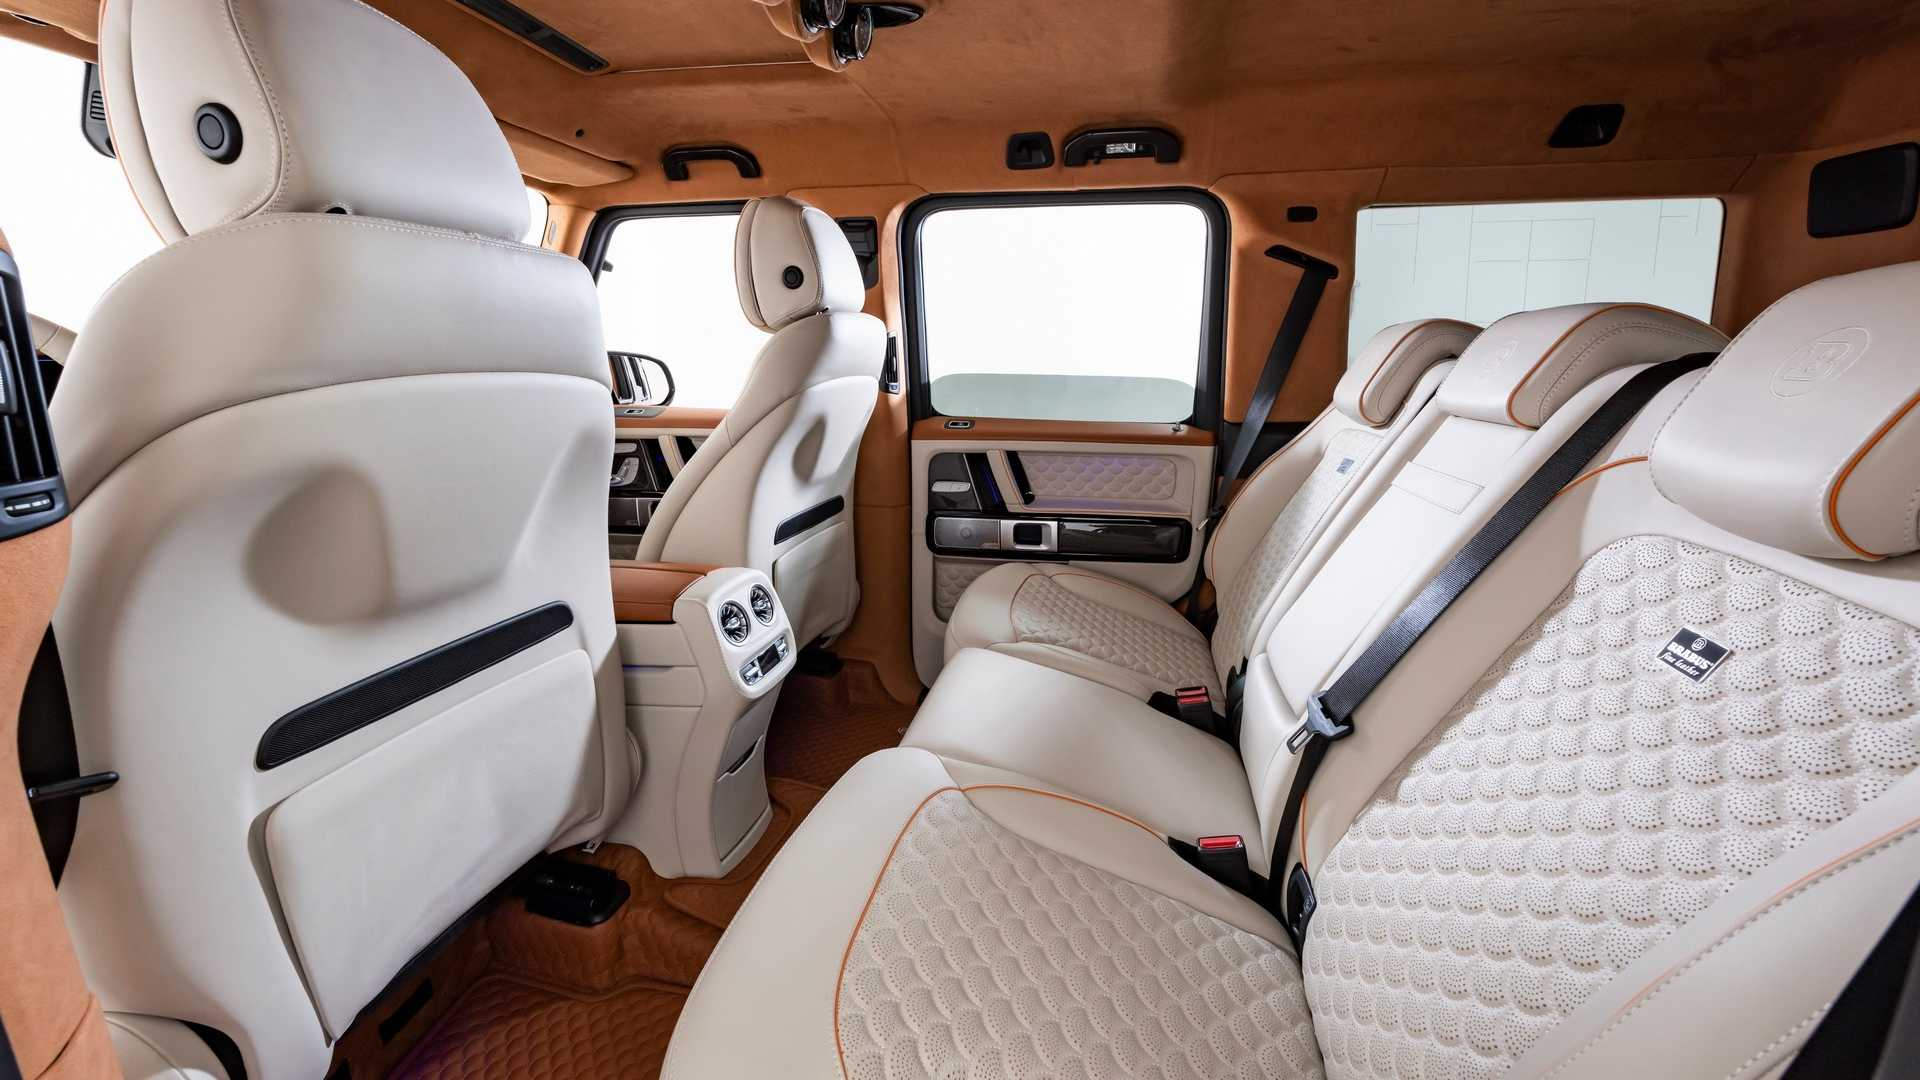 https://cdn.motor1.com/images/mgl/P601W/s6/mercedes-amg-g-class-with-v12-engine-from-brabus.jpg